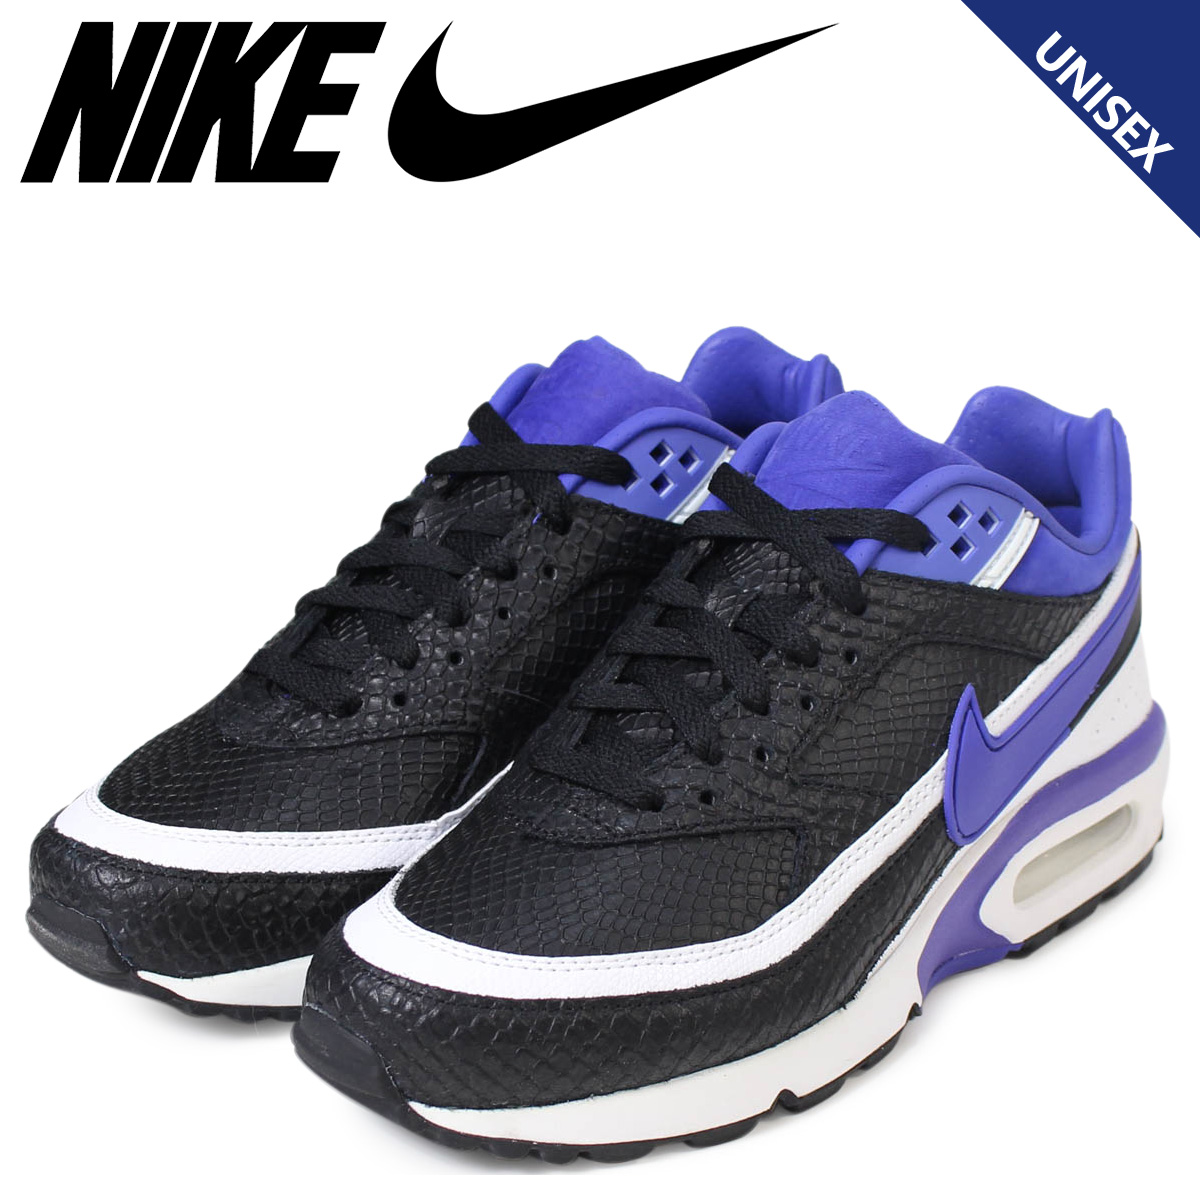 Conception innovante b7d42 11d93 Nike NIKE Air Max men gap Dis sneakers AIR MAX BW PREMIUM 819,523-051 shoes  black [2/27 Shinnyu load]